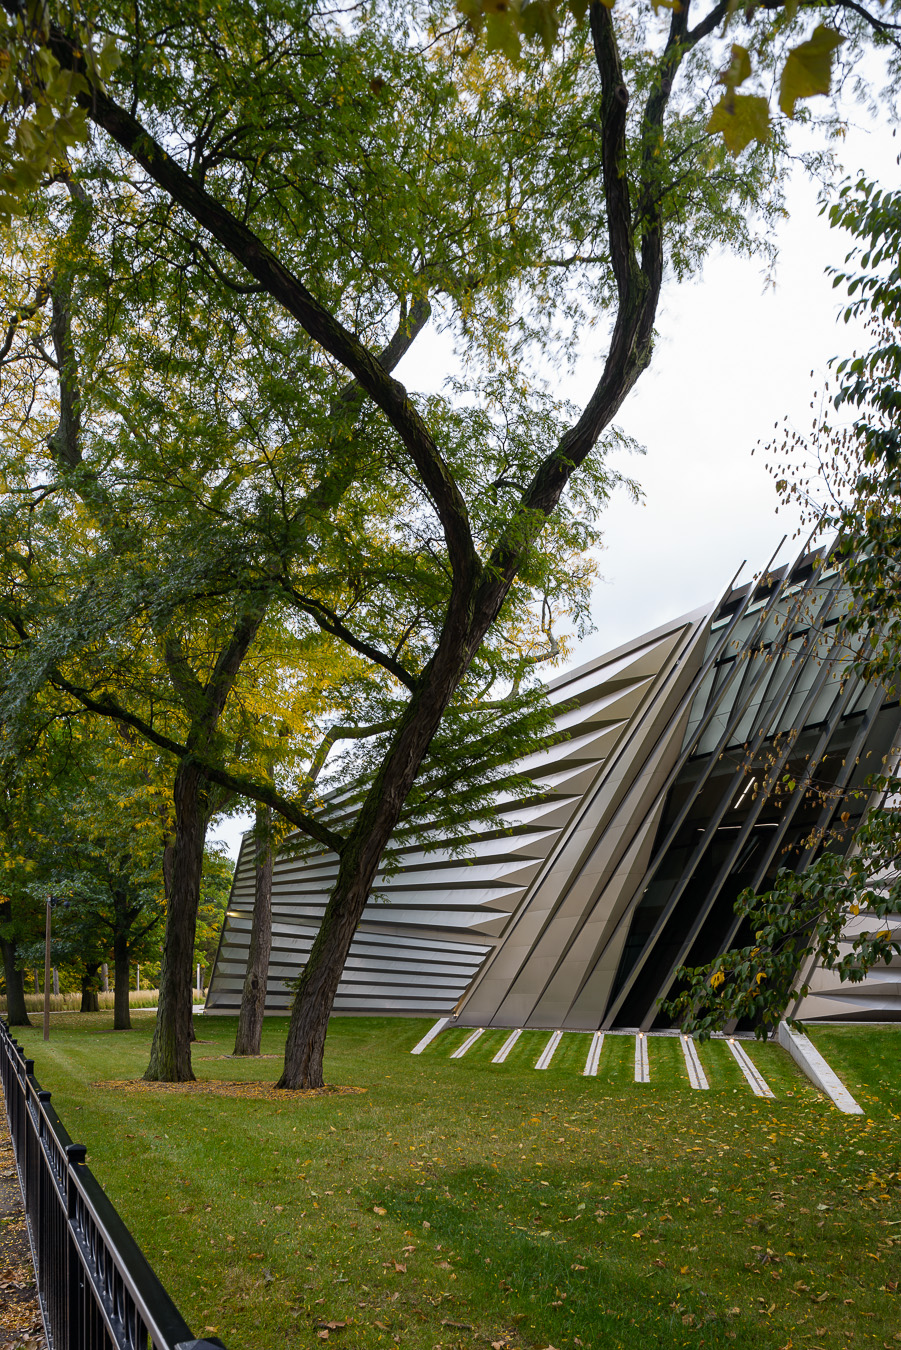 62-Zaha Hadid Broad Museum Lansing Doublespace Toronto Architectural Photography.jpg